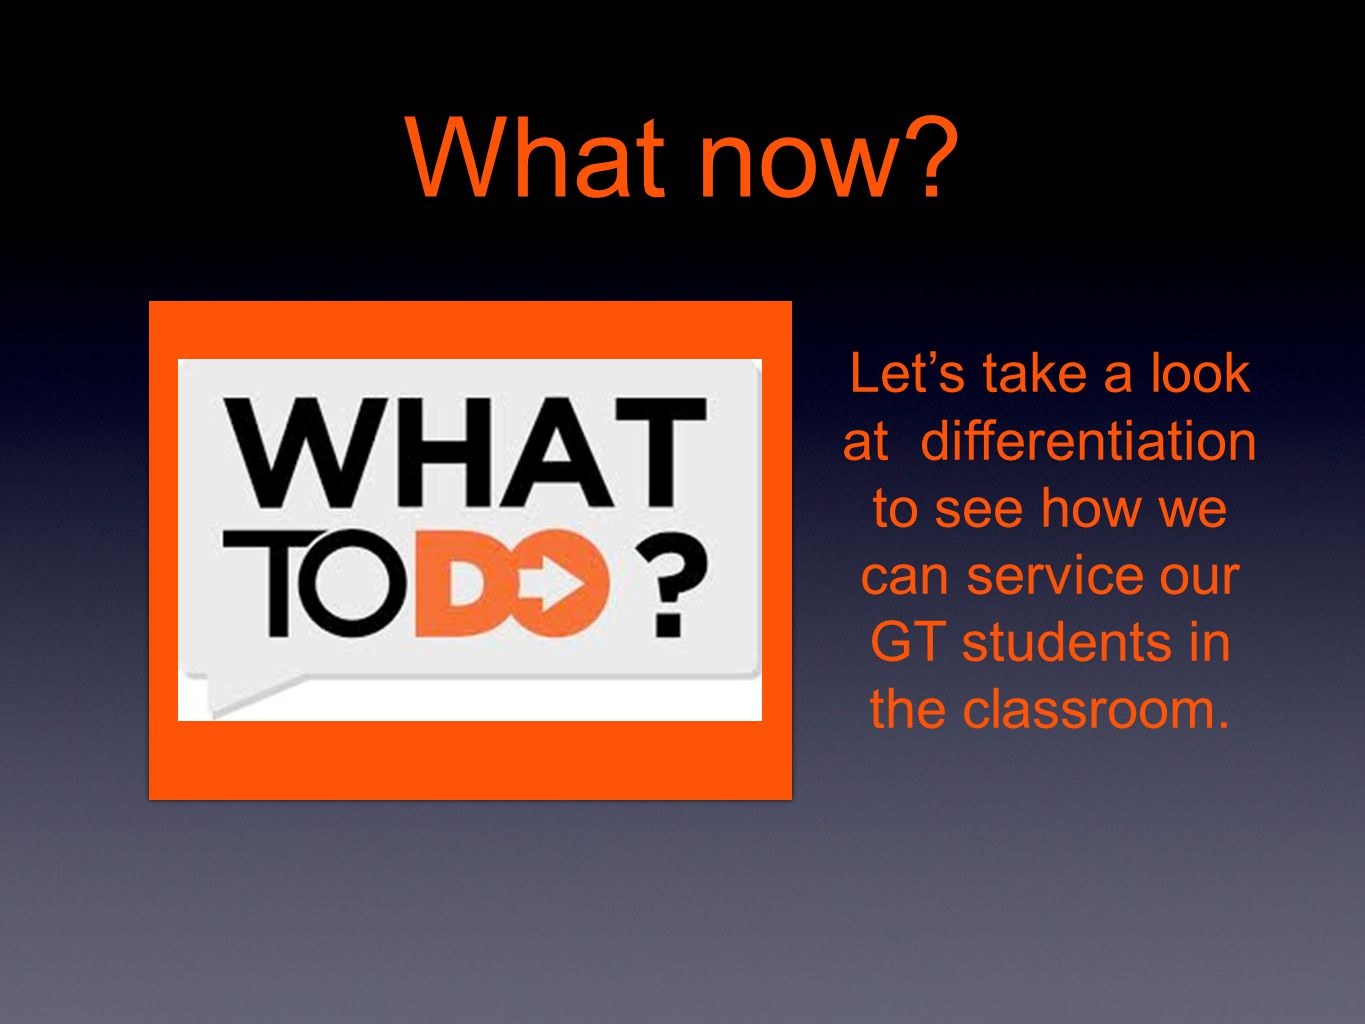 What now? Let's take a look at differentiation to see how we can service our GT students in the classroom.